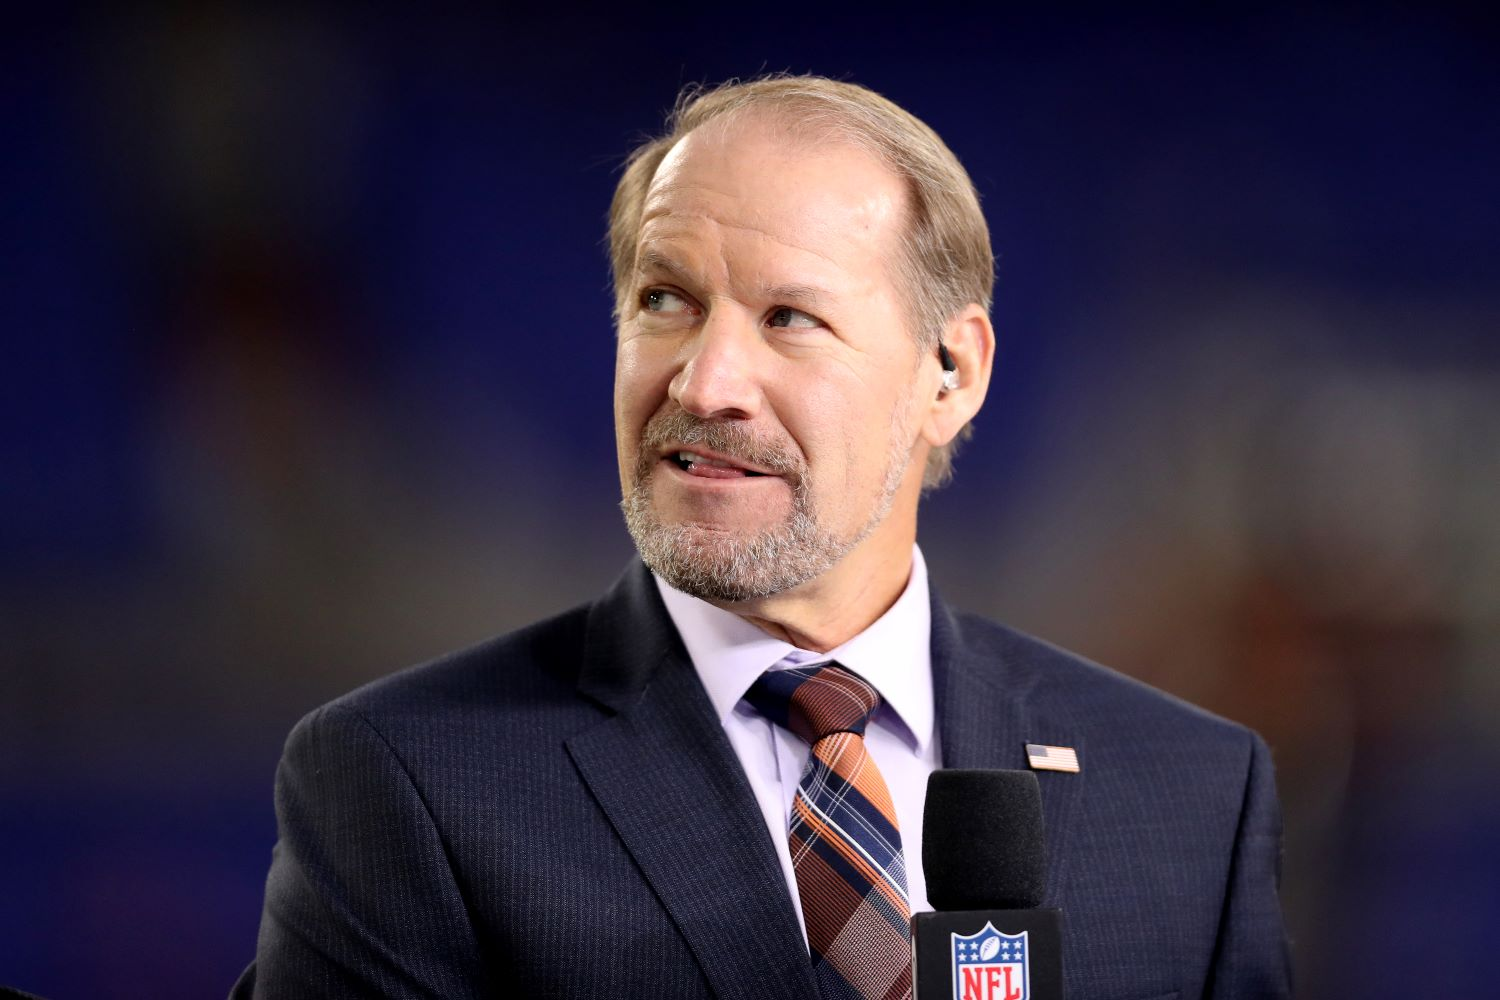 With rumors swirling about a potential return to the sidelines, Steelers icon Bill Cowher sent a crystal clear message about coaching again.